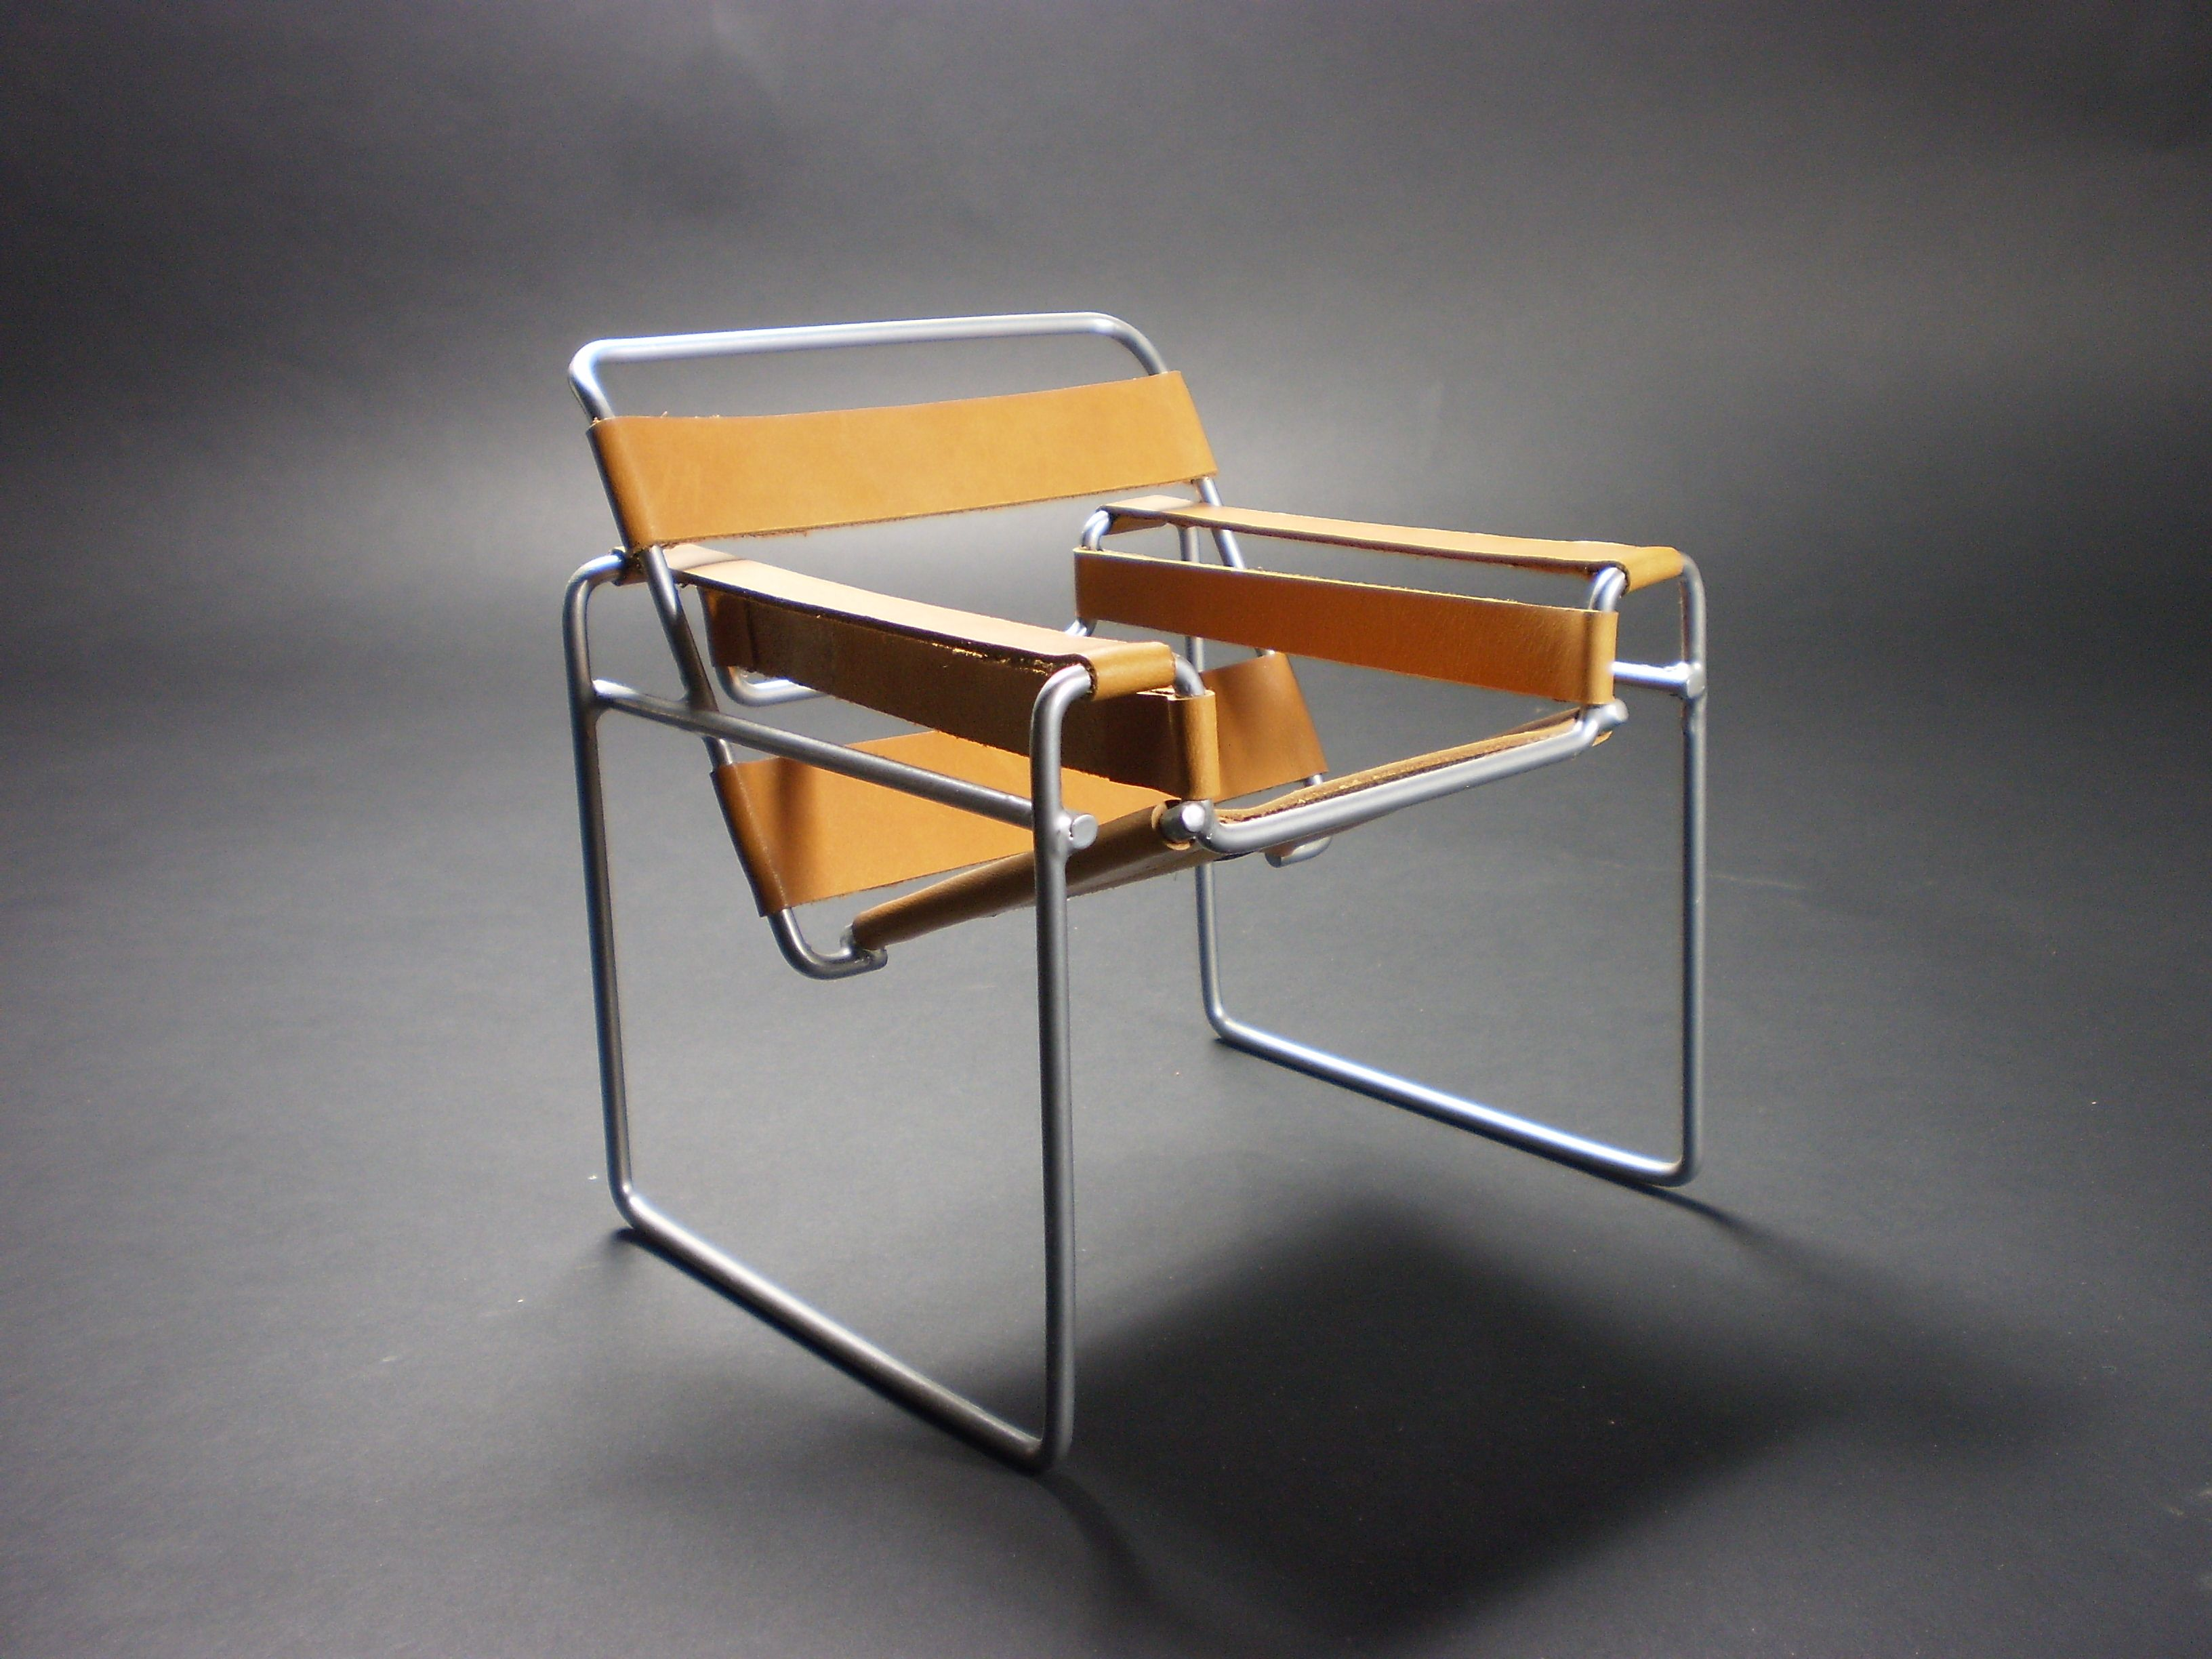 Wassily Chair wassily chair marcel breuer wassily chair wasily chair idea